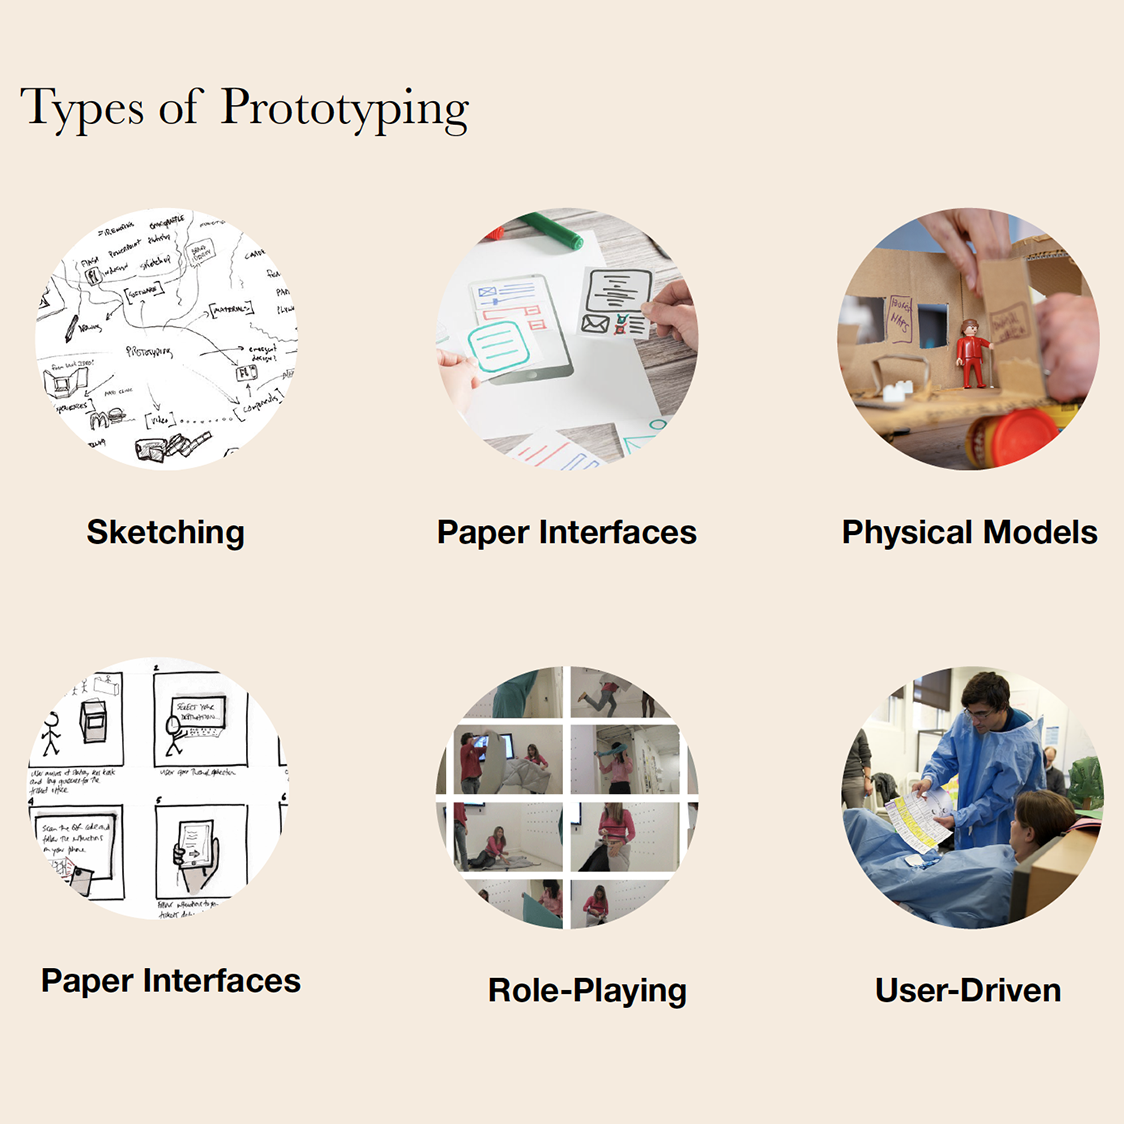 6 Circles revealing examples of prototyping with a word below each.